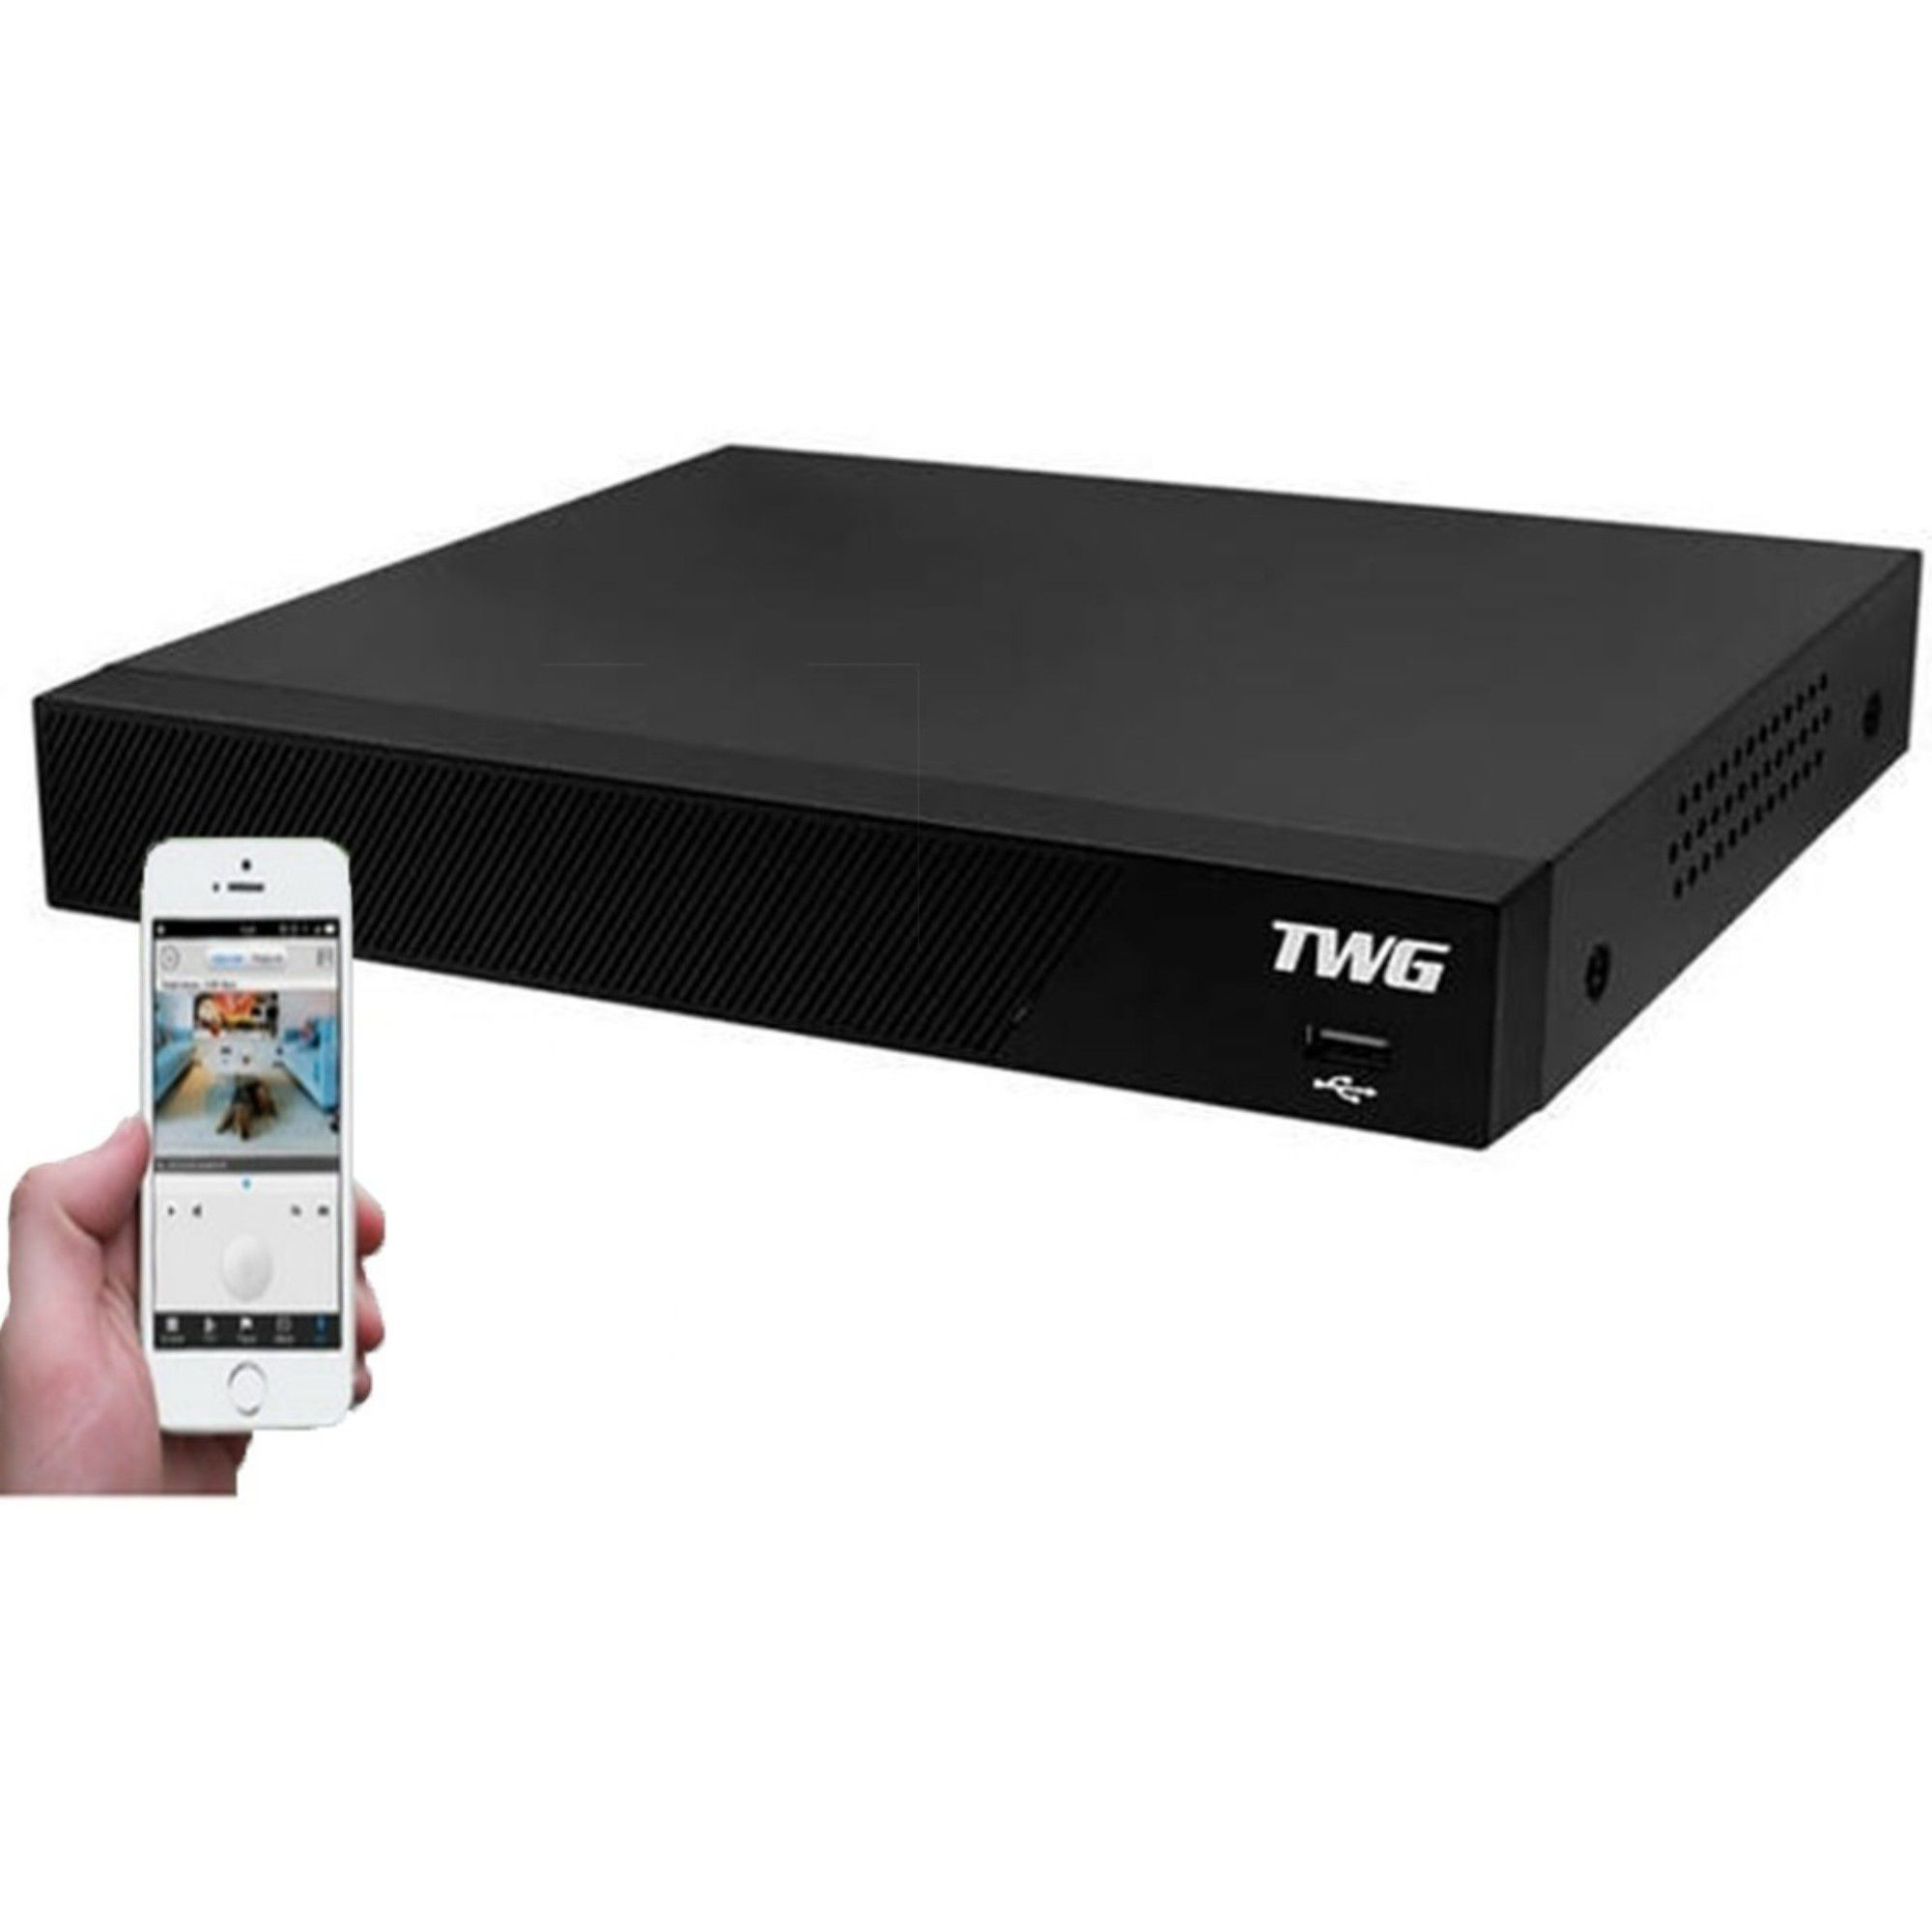 DVR Stand Alone 16 Canais TWG Full HD 5 em 1